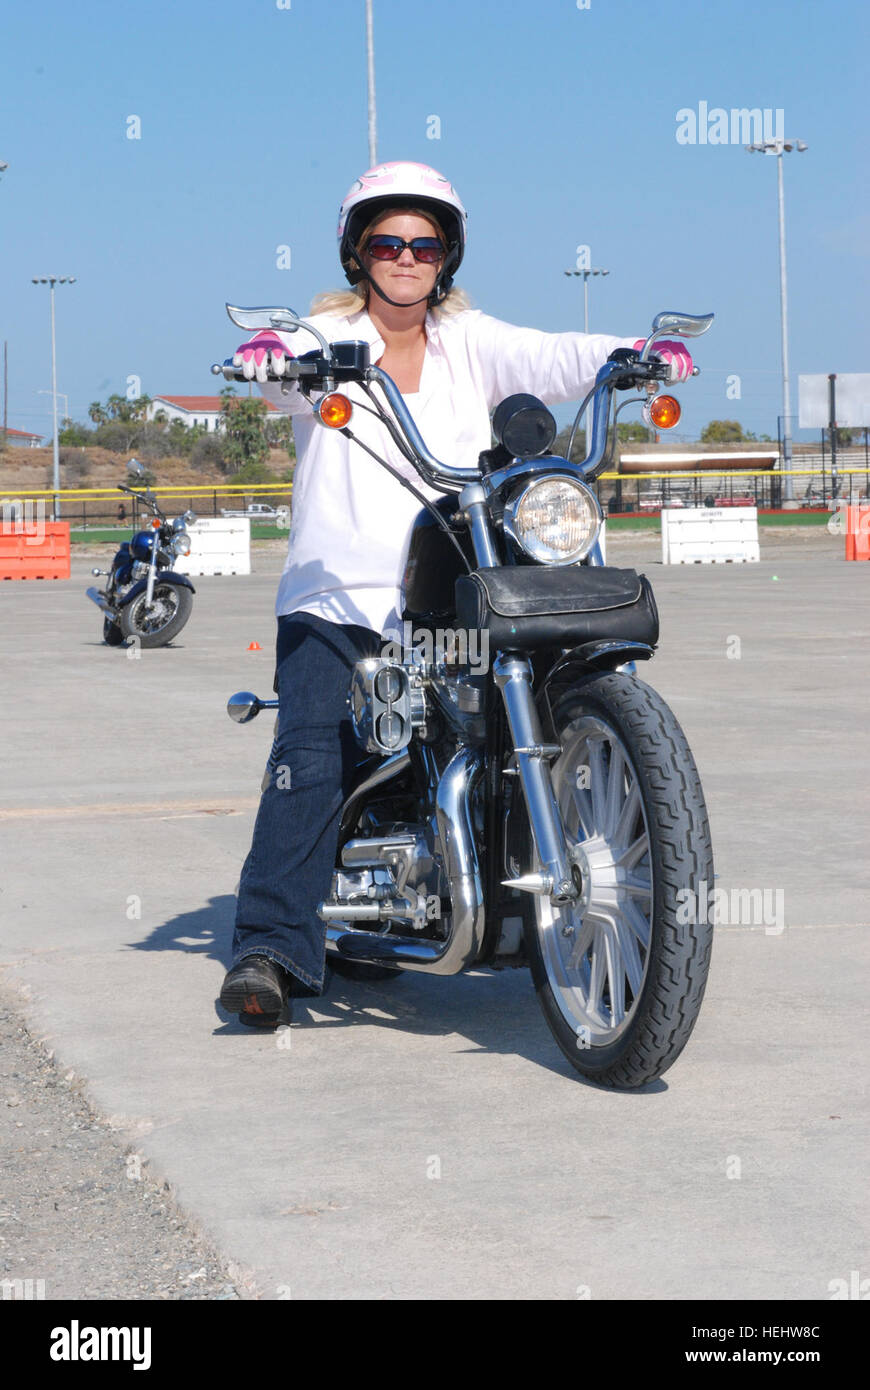 GUANTANAMO BAY, Cuba U2013 Candice Rice, Director Of The Local Navy College  Office, Participates In An Experienced Rider Motorcycle Course At U.S. Naval  Station ...